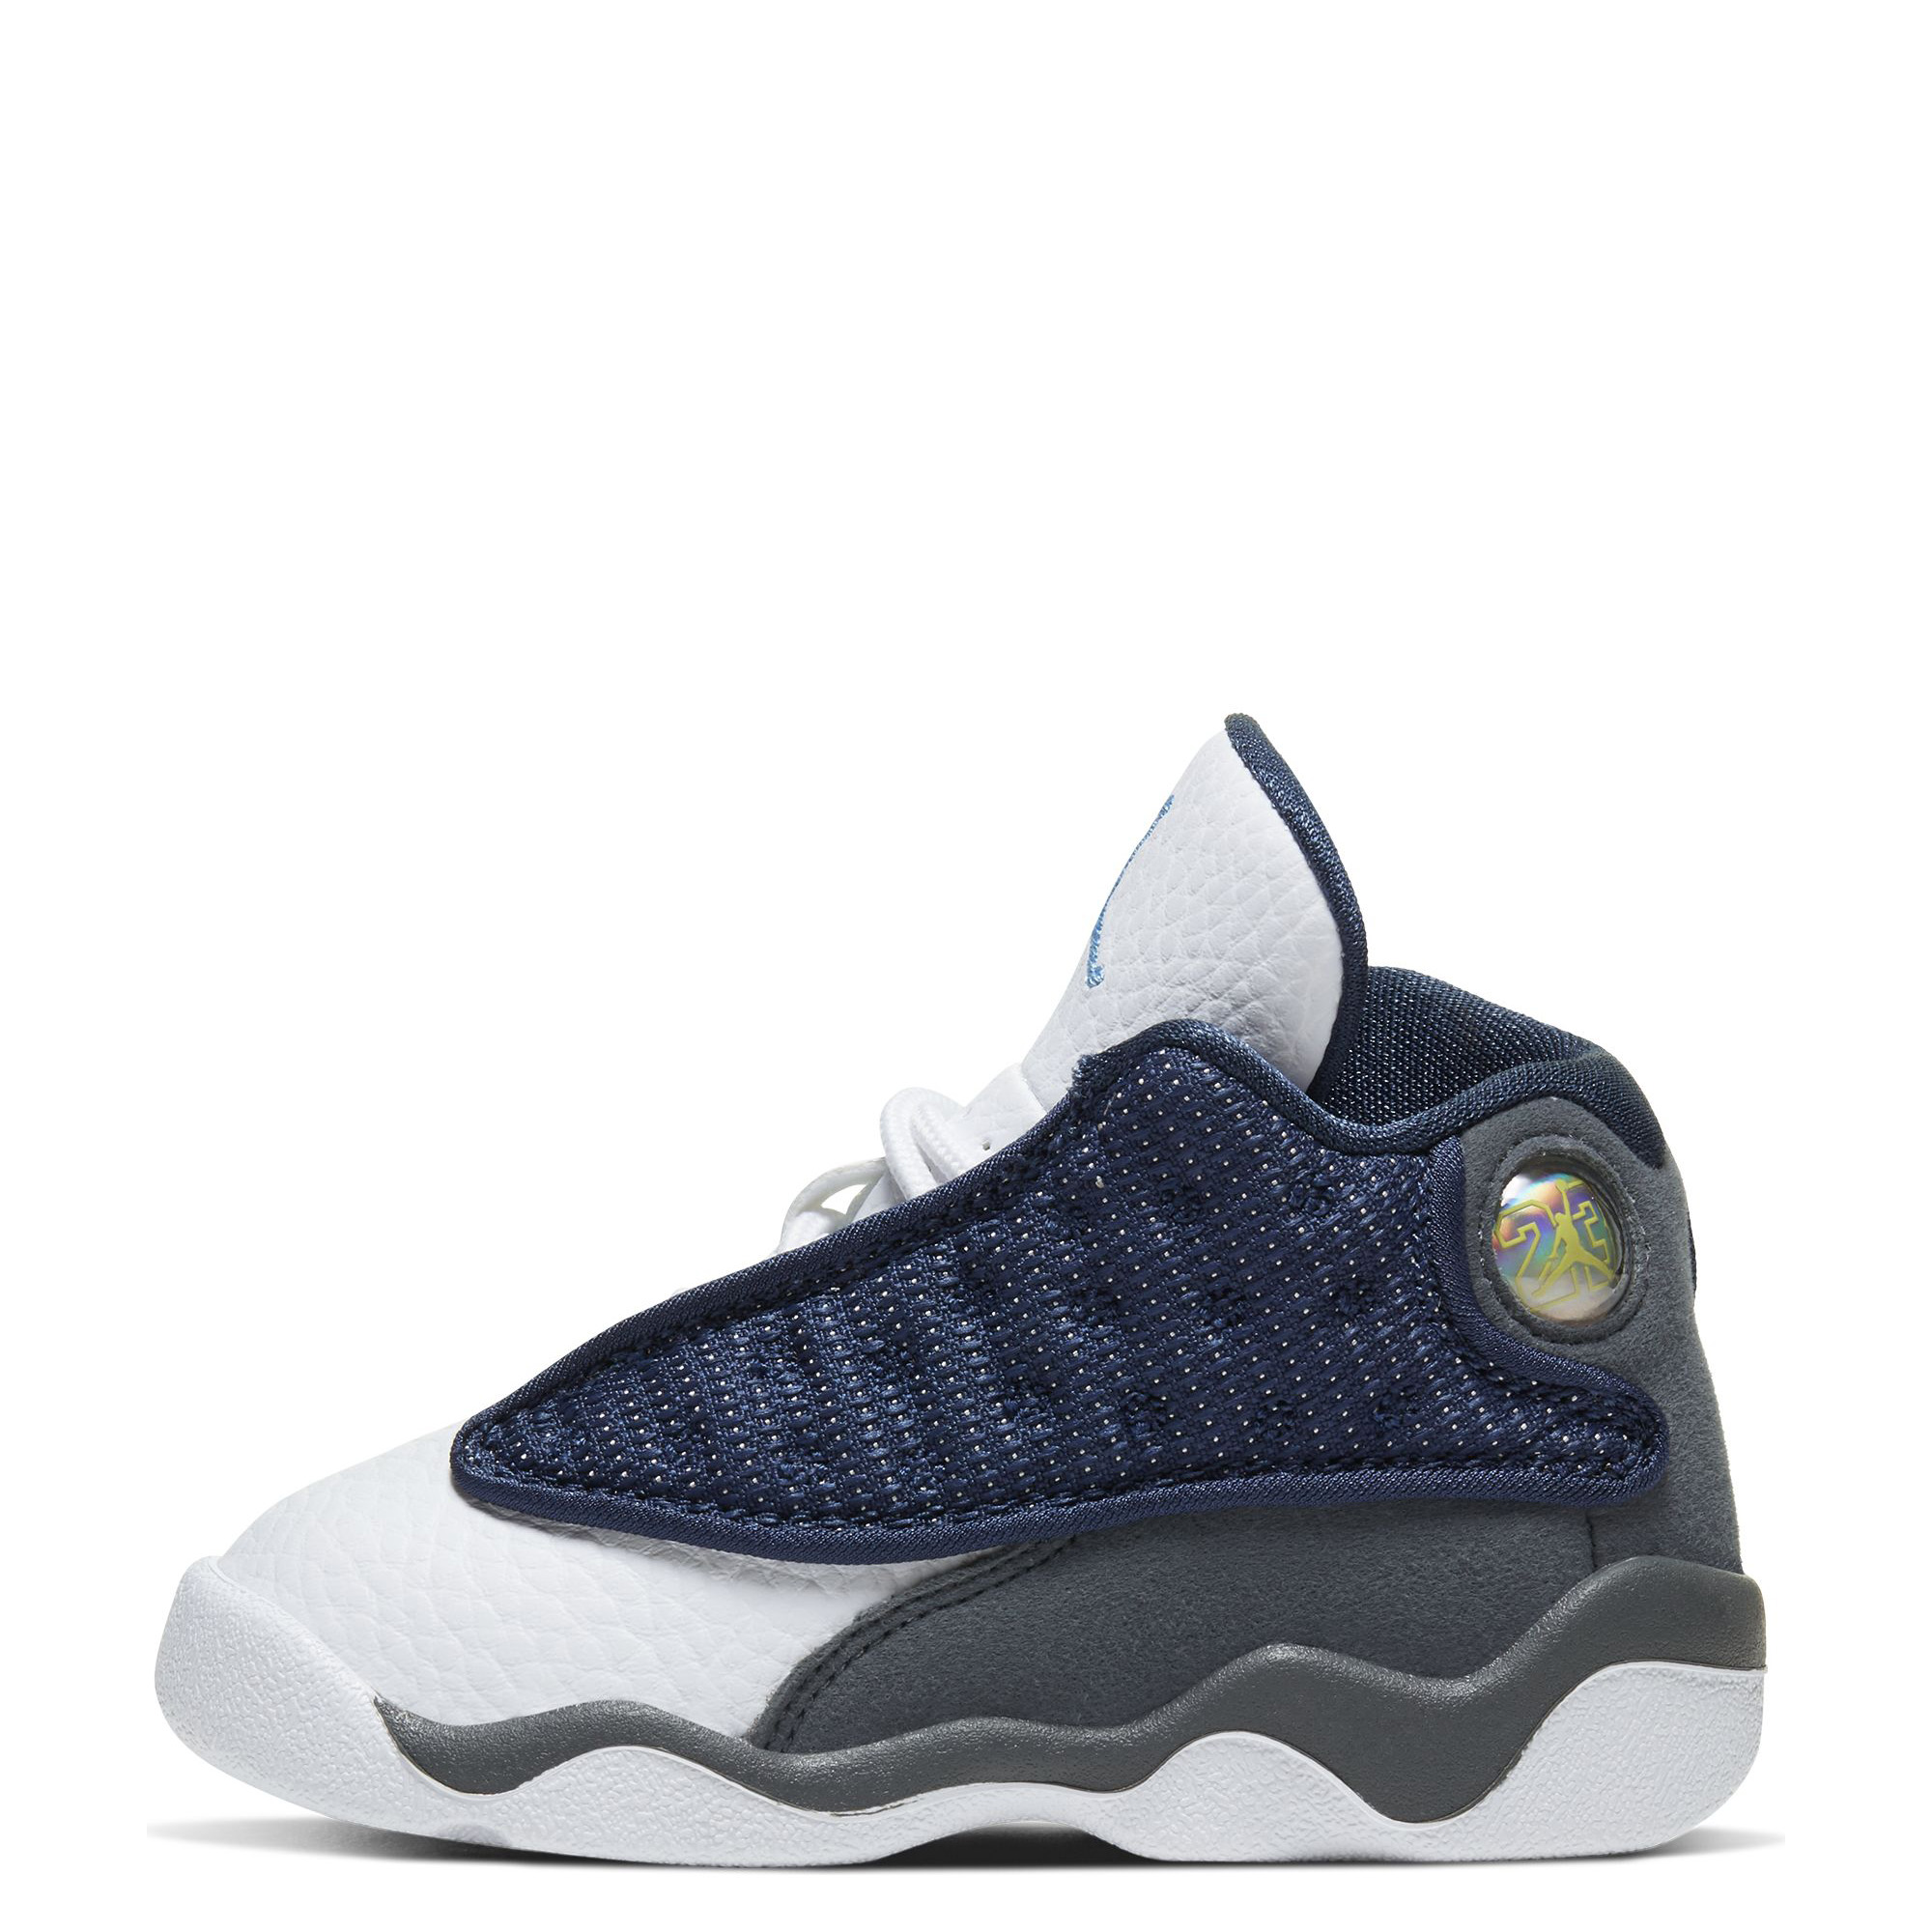 Td Air Jordan 13 Retro Navy University Blue Flint Grey White